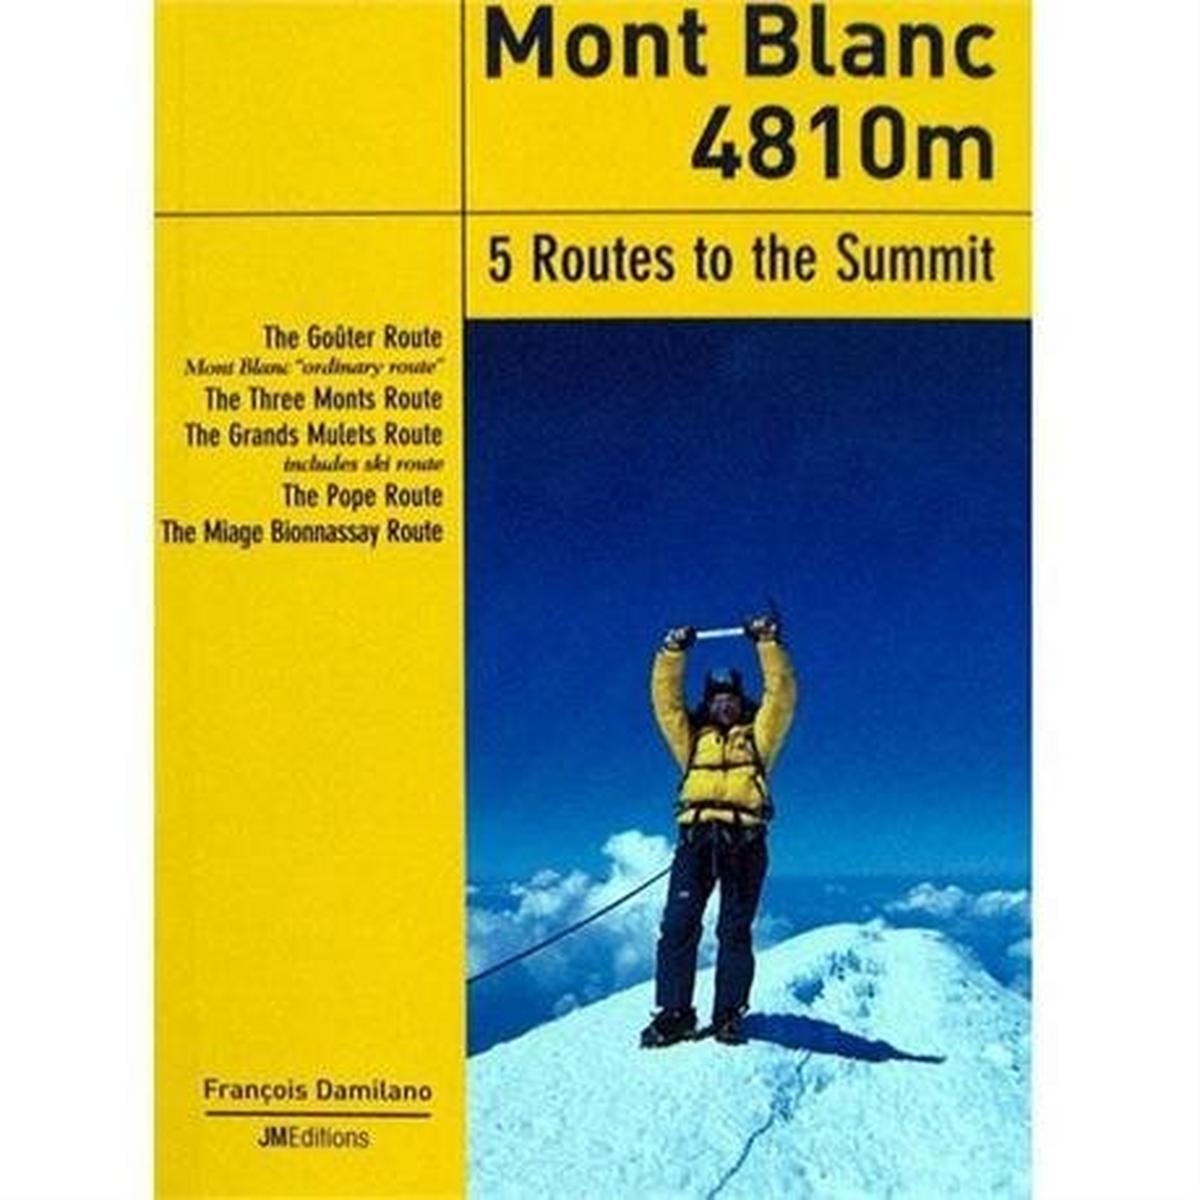 Miscellaneous Climbing Guide Book: Mont Blanc 4810m - 5 Routes to the Summit